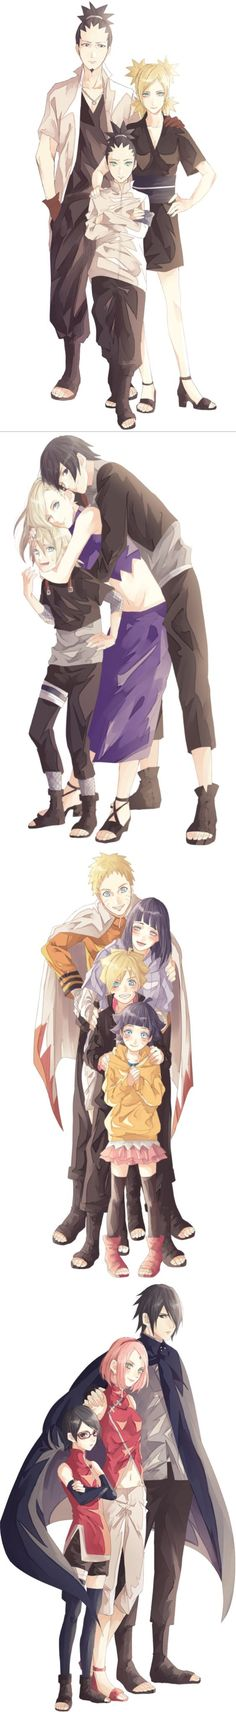 The best part is that this artist draws every single one of them so in character. ShikaTema + Shikadai, SaiIno + Inojin, NaruHina + Boruto + Himawari, SasuSaku + Sarada #naruto: